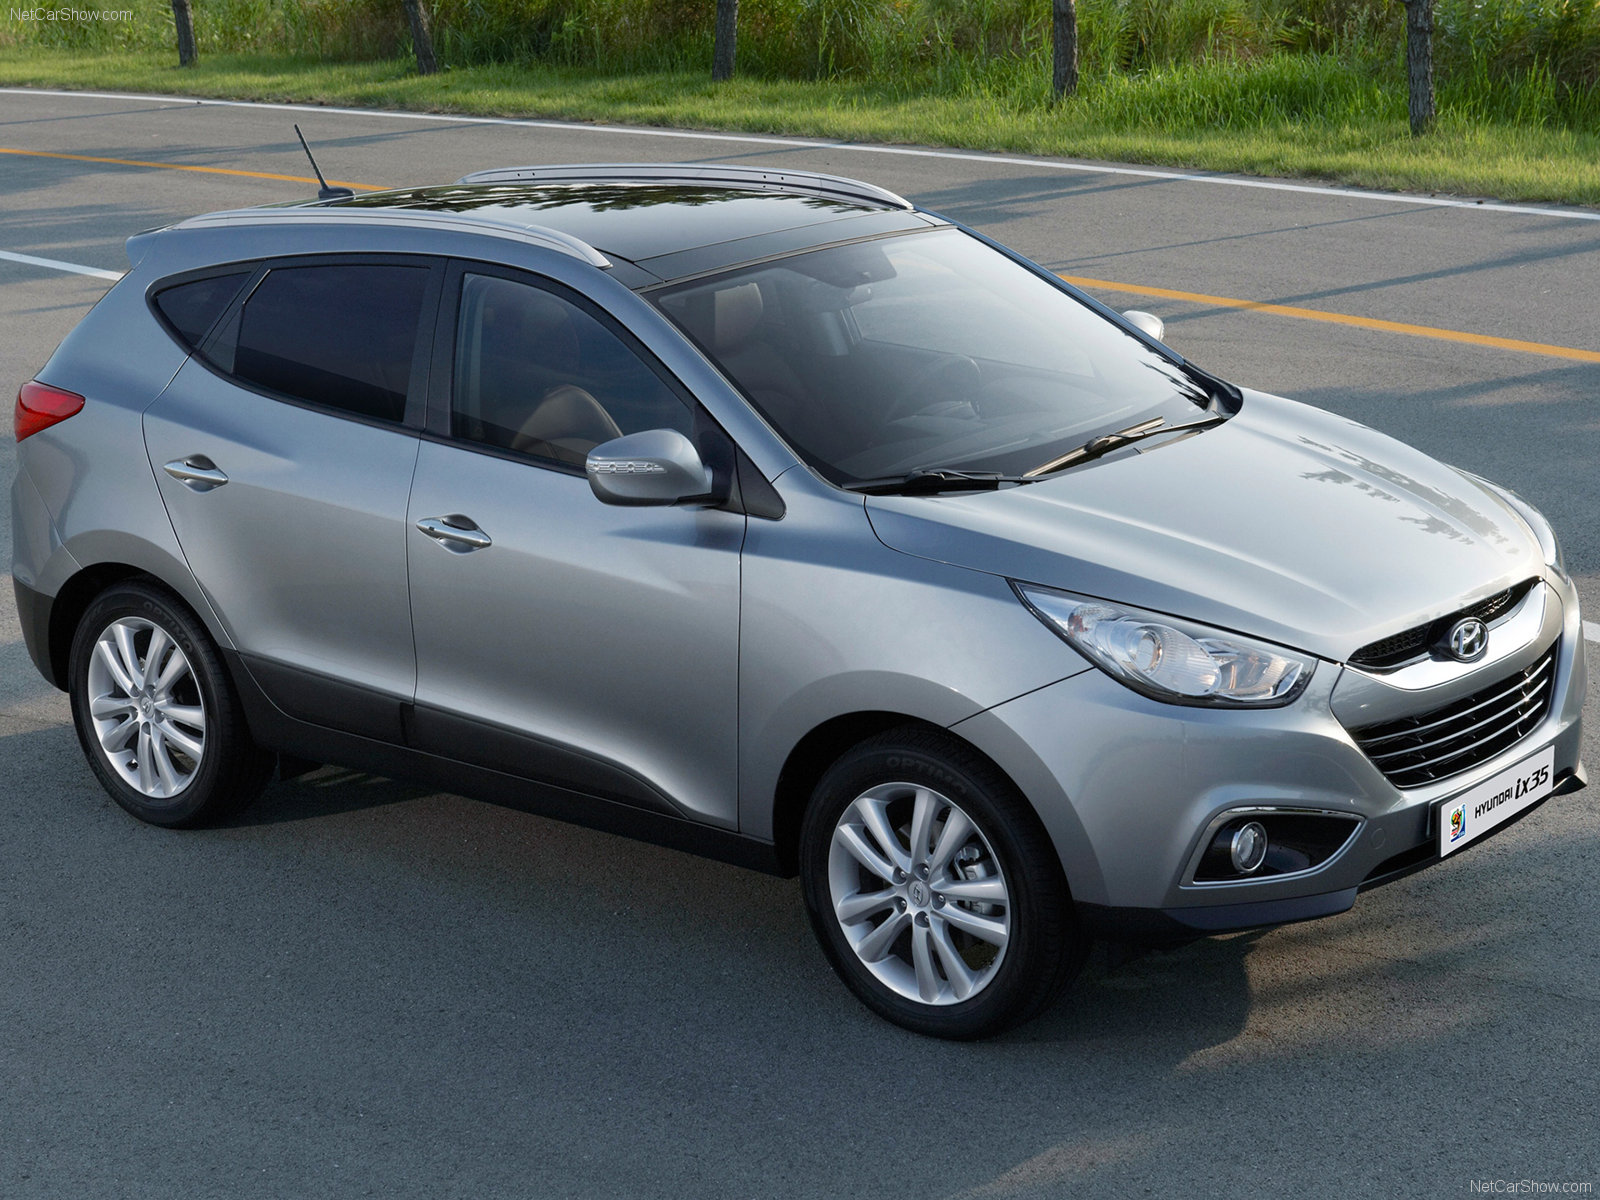 The price of new Hyundai Tucson ix35 is expected to be around Rs. 19